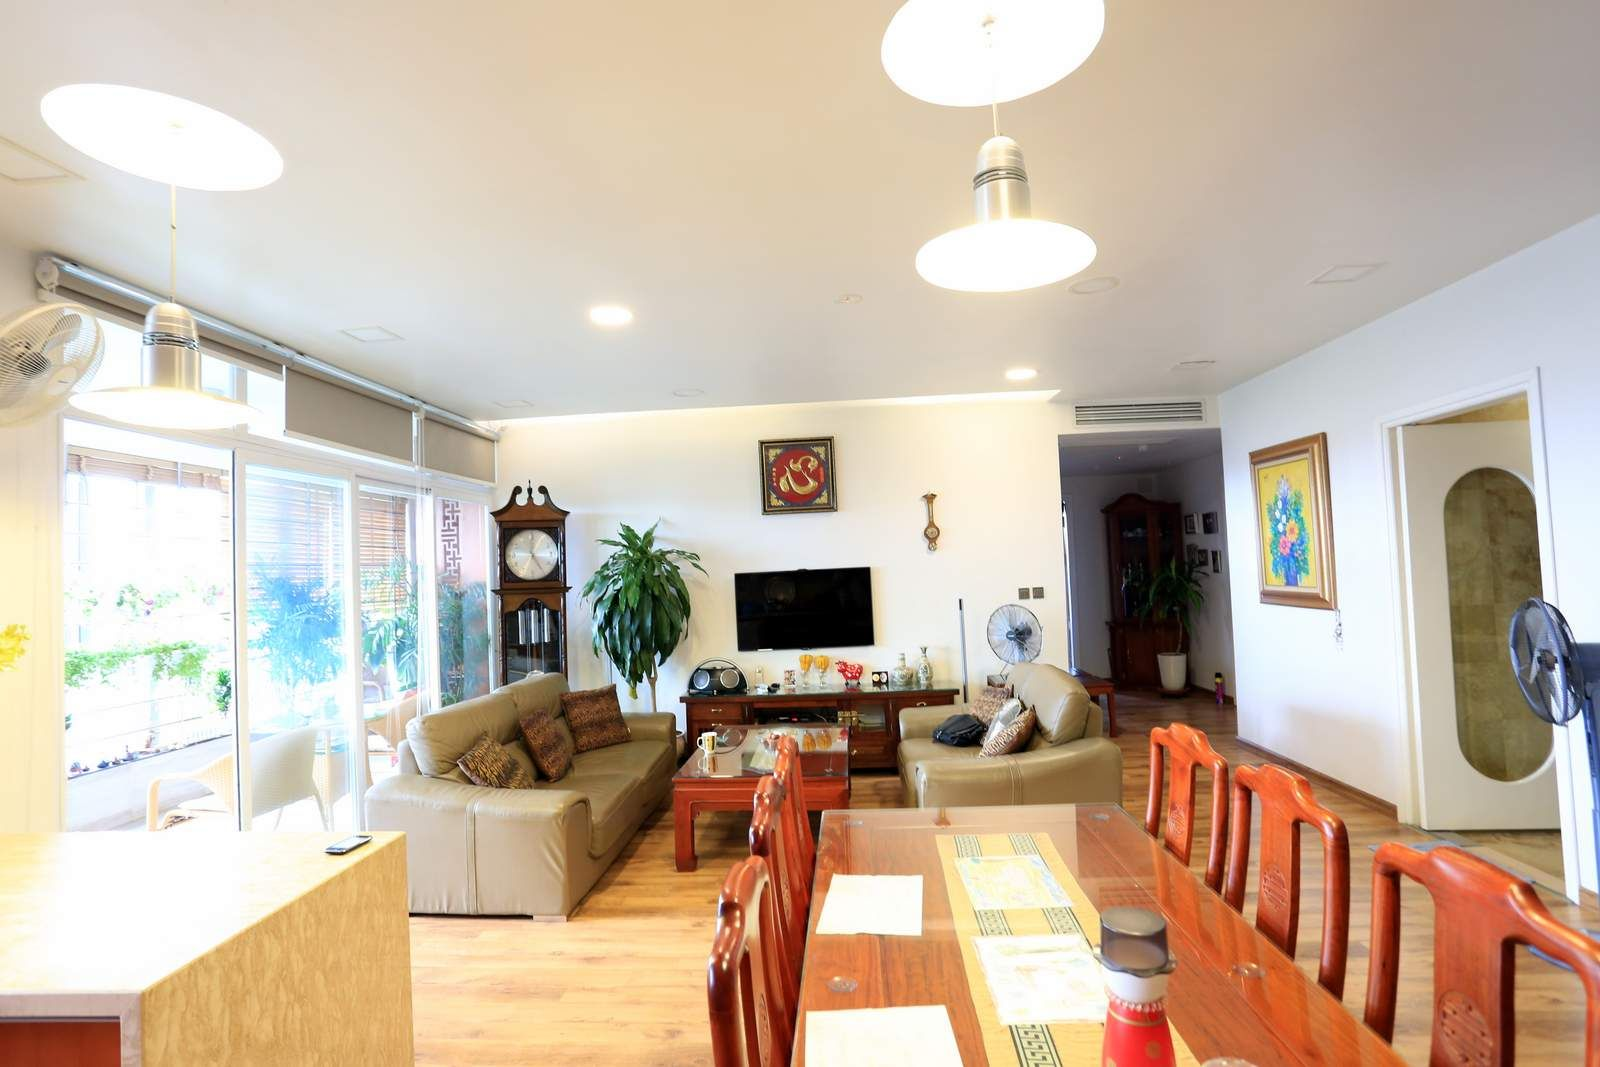 3 bedroom apartment in 671 Hoang Hoa Tham rental.